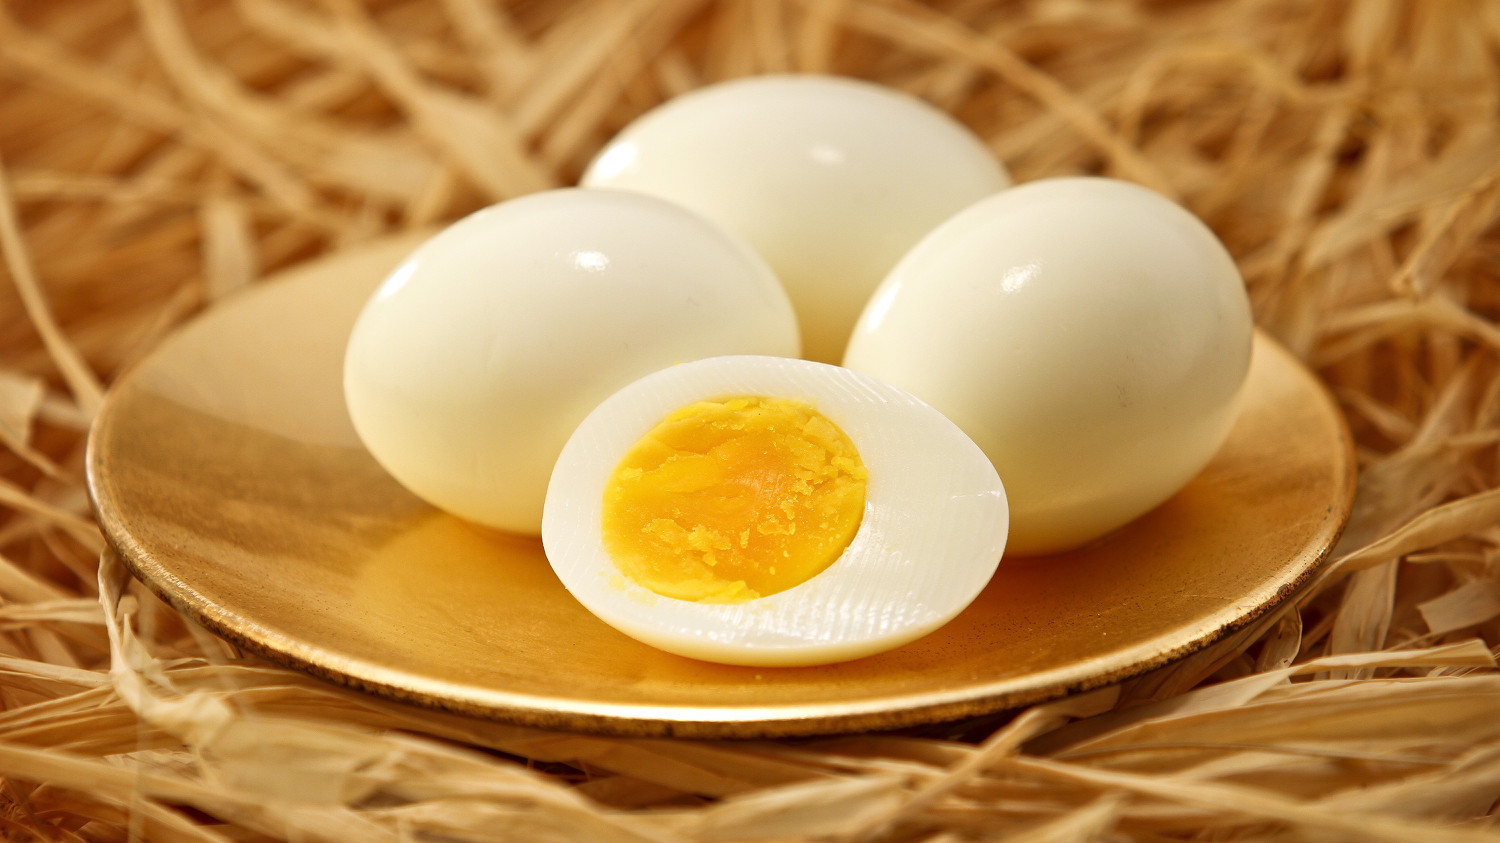 Want perfect hard-boiled eggs? Follow the one true way - LA Times